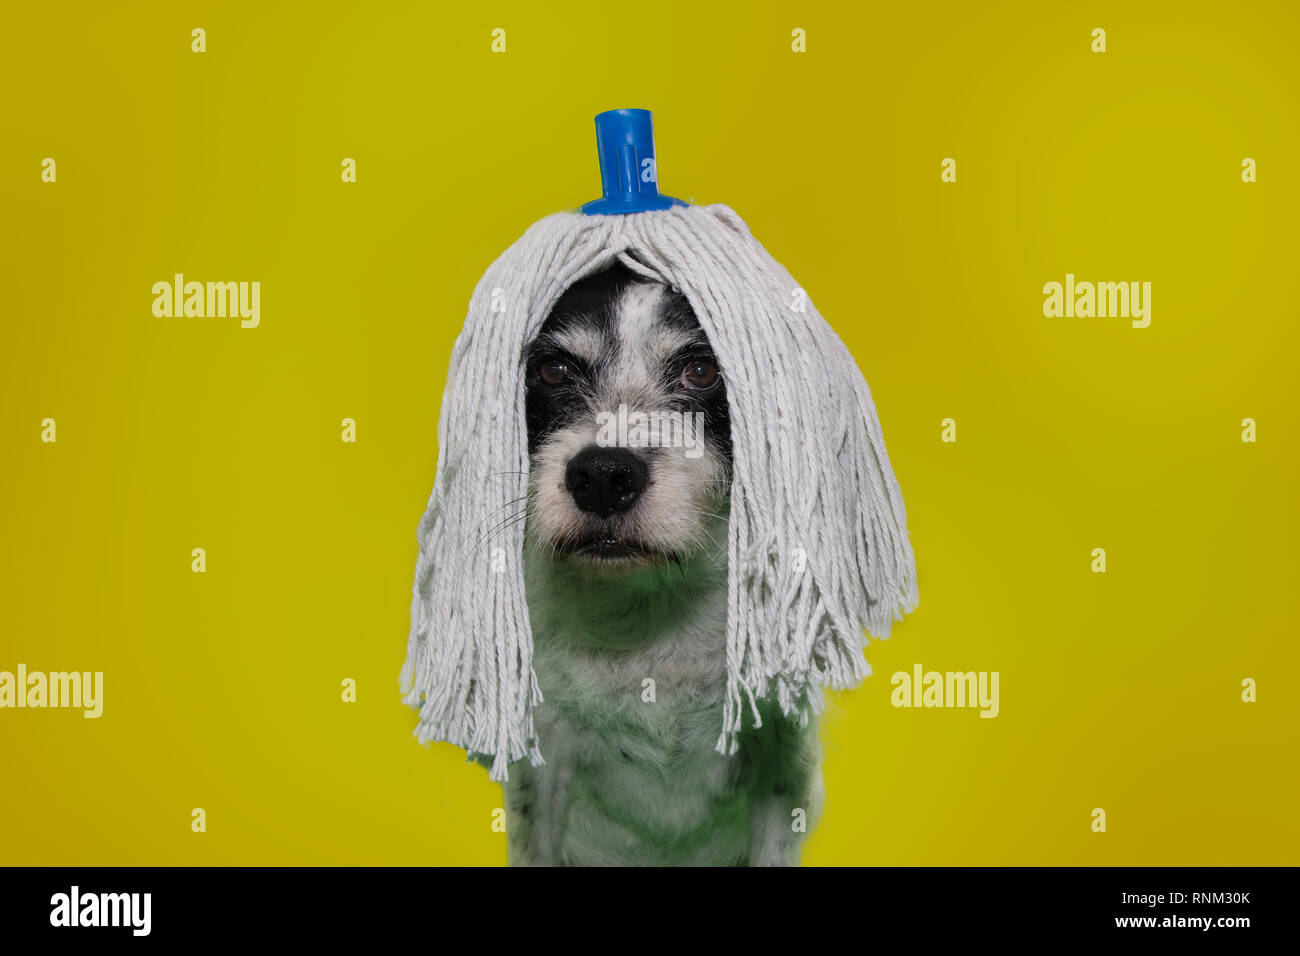 FUNNY DOG DRESSED WITH A MOP WIG FOR CARNIVAL, NEW YEAR OR HALLOWEEN PARTY. ISOLATED SHOT ON YELLOW COLORED BACKGROUND. - Stock Image